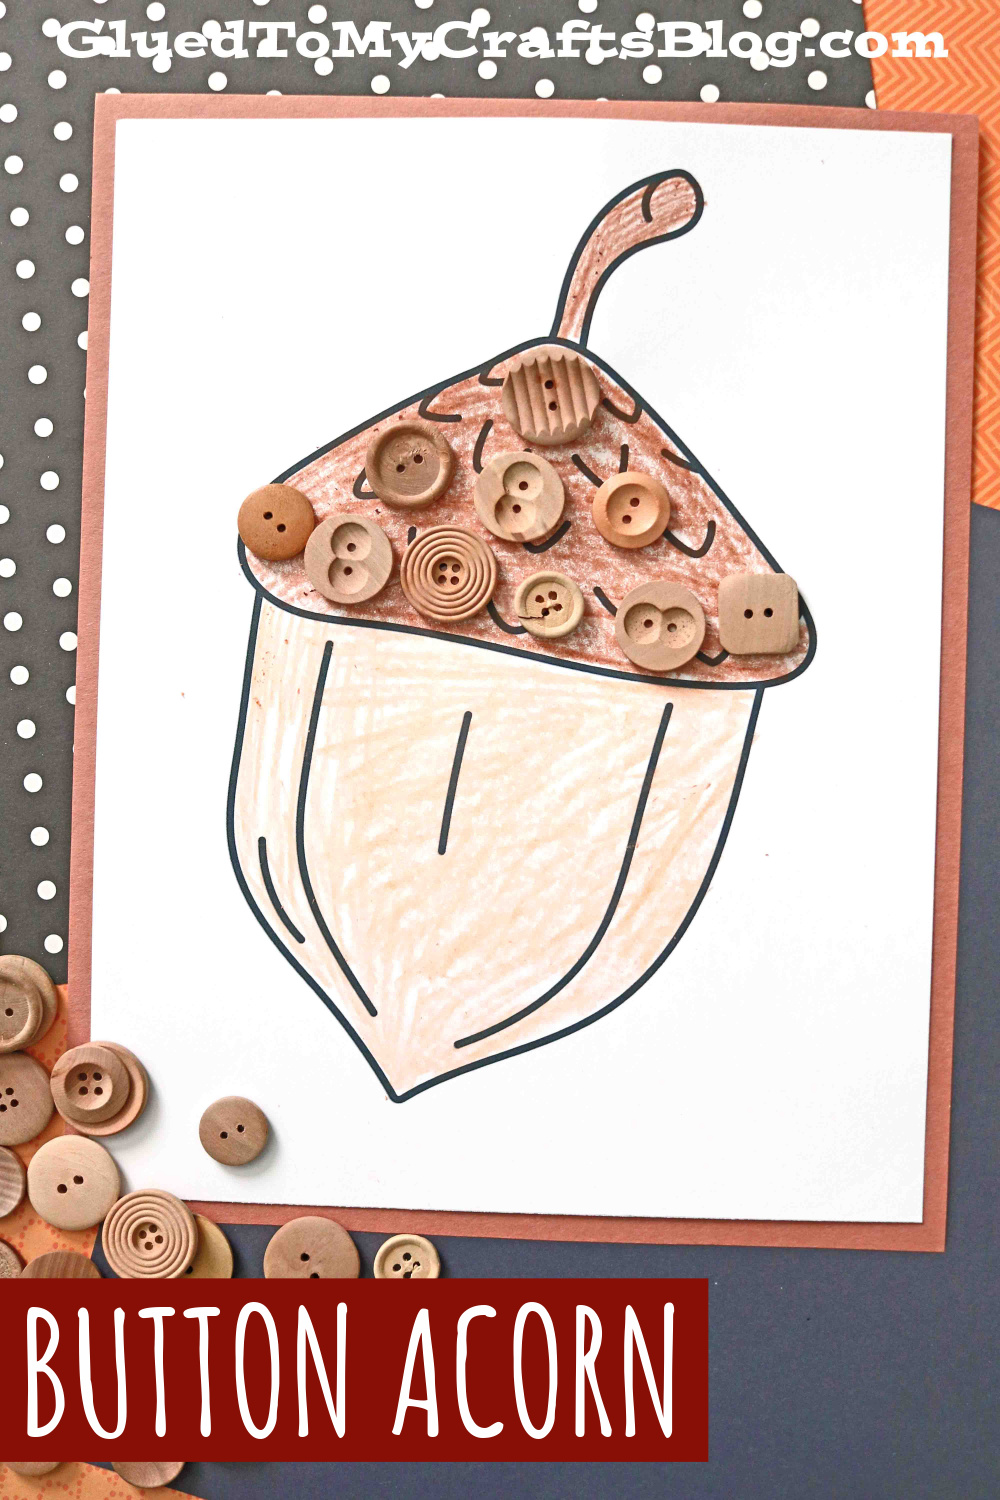 Button Covered Acorn Craft Idea For Kids To Make This Fall!